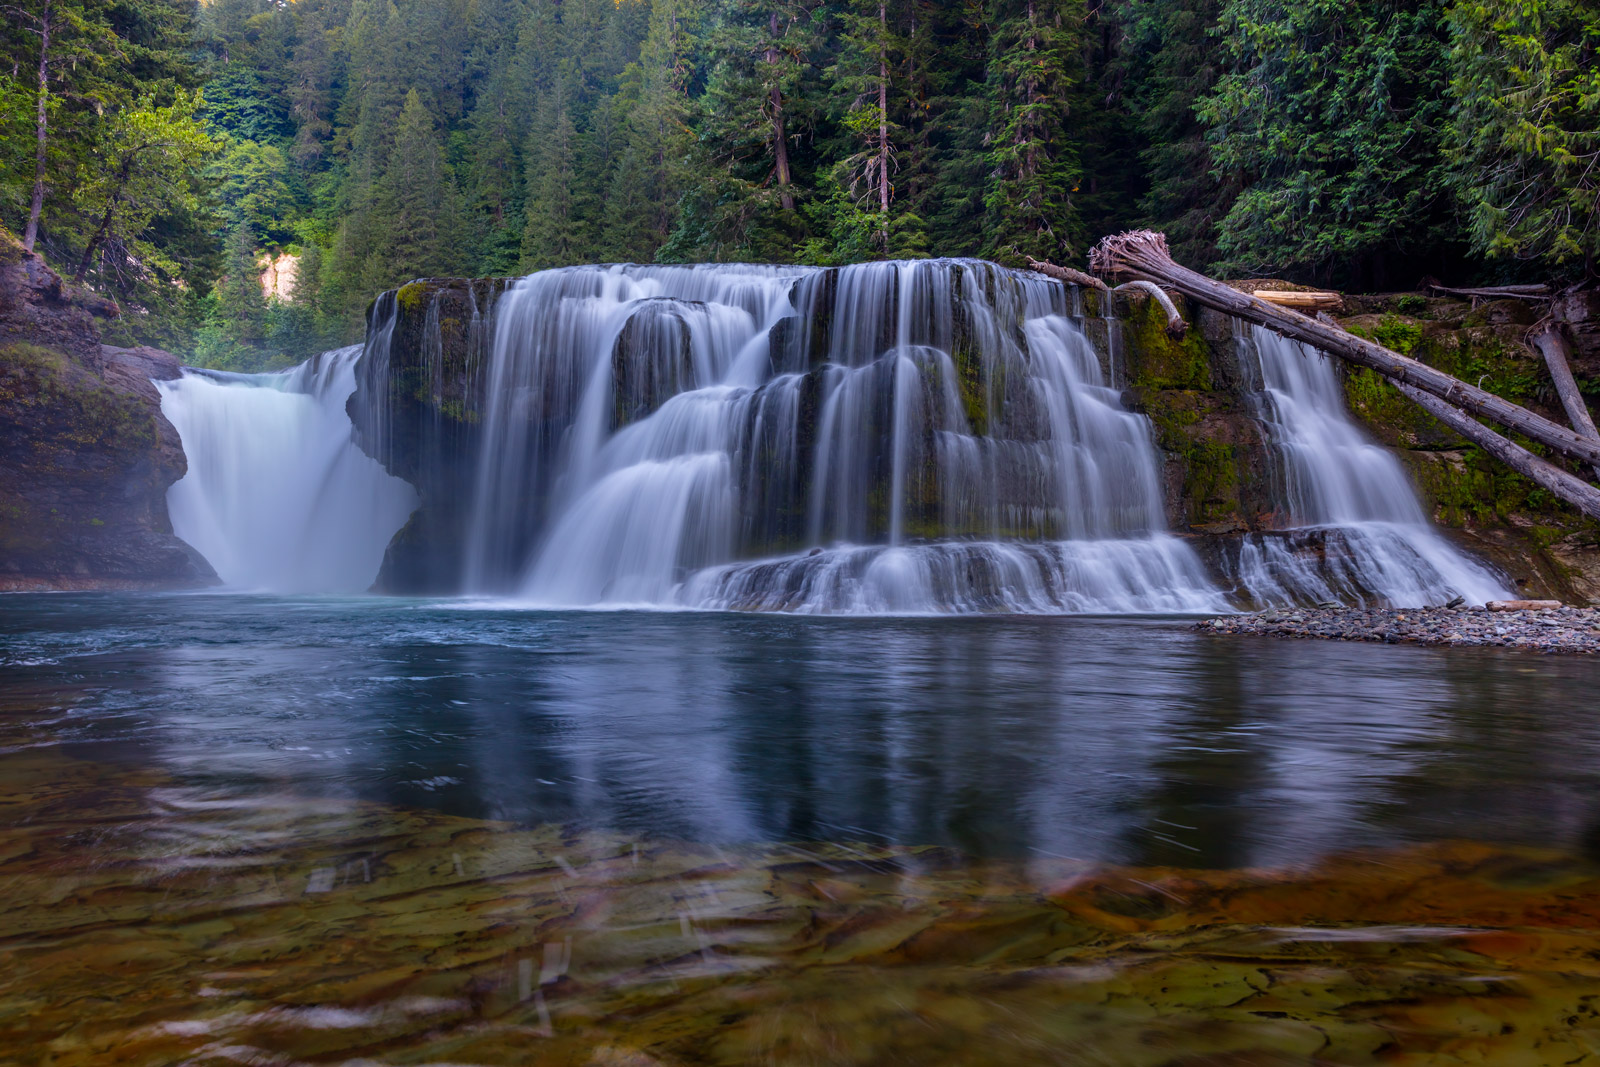 Washington, Lower Lewis River Falls, Waterfall, River, Lewis River, limited edition, photograph, fine art, landscape, photo